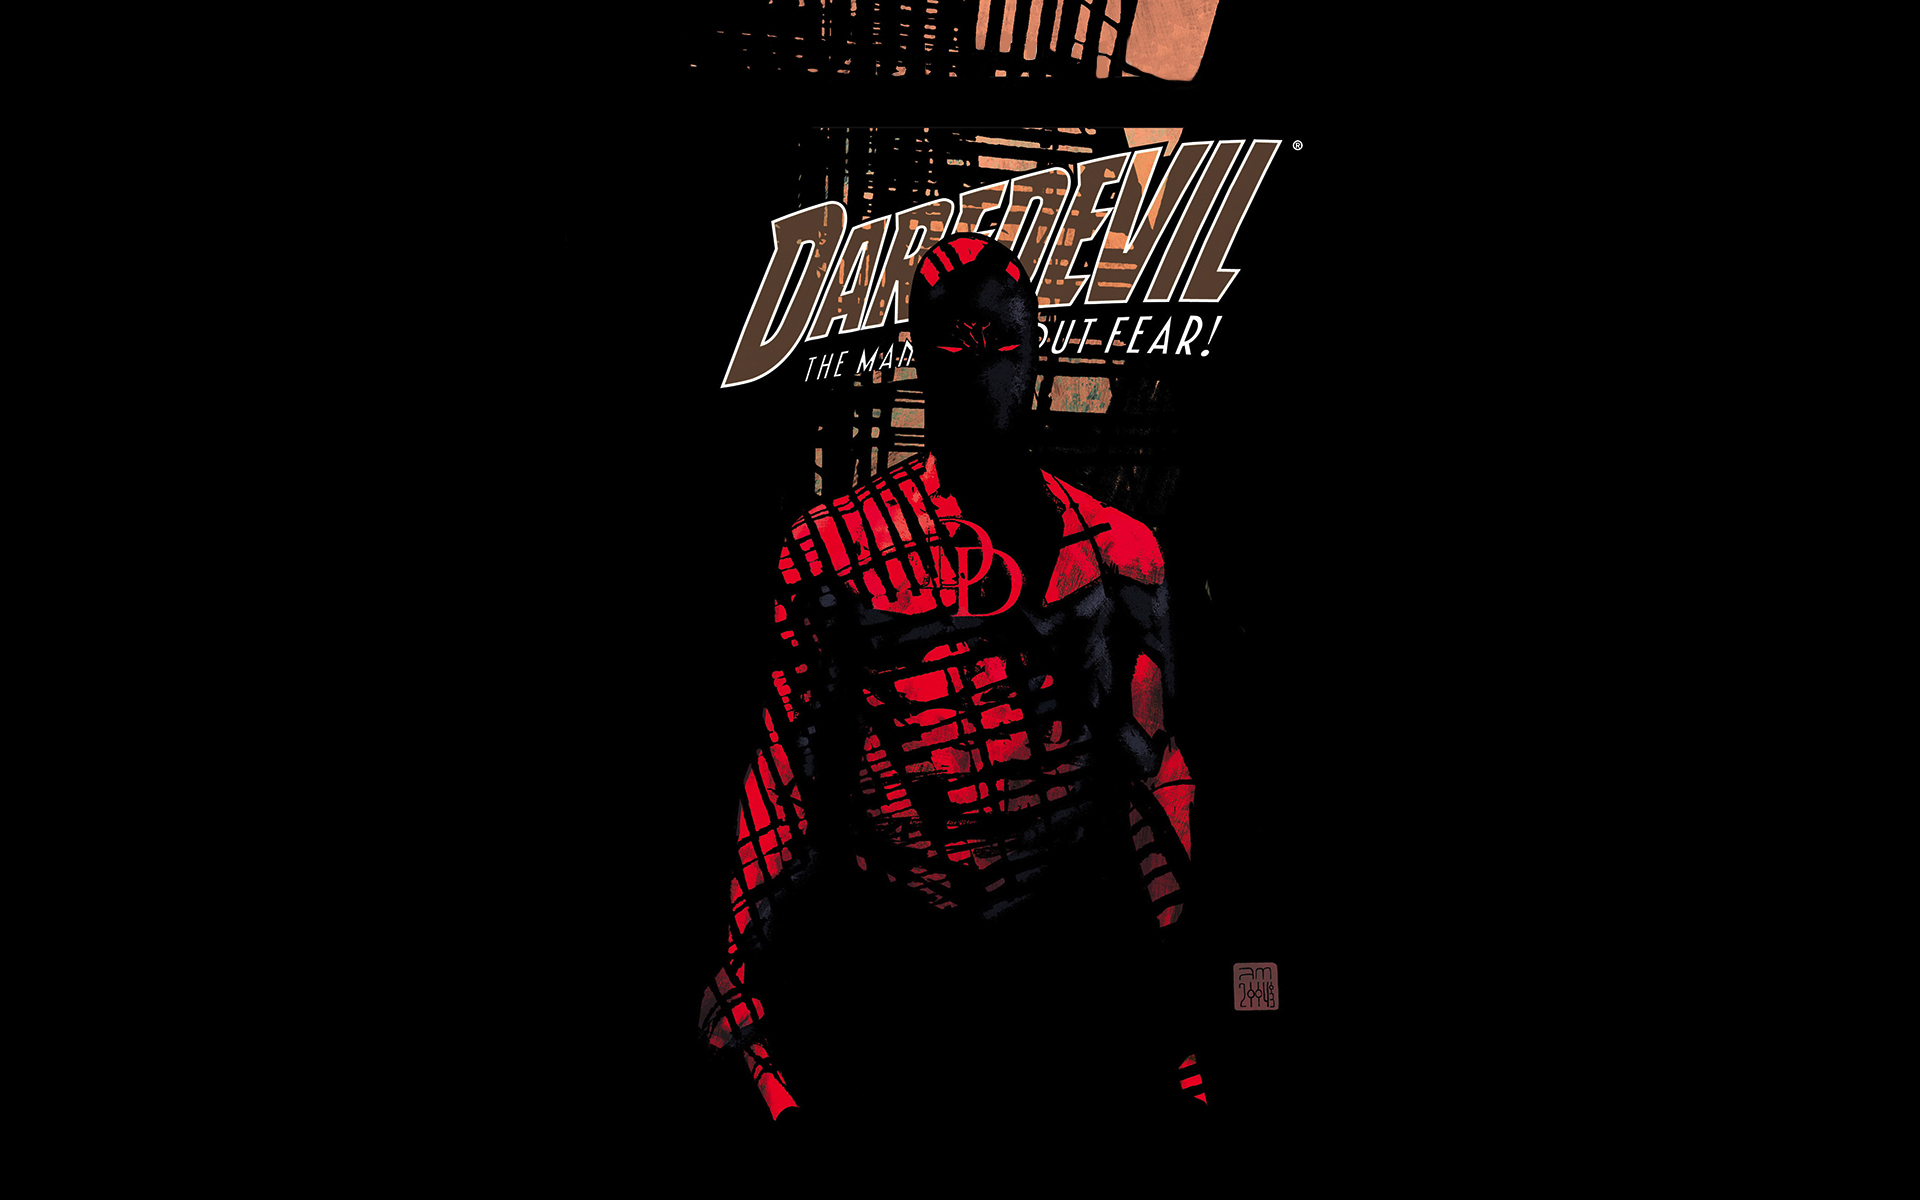 daredevil wallpaper in - photo #22